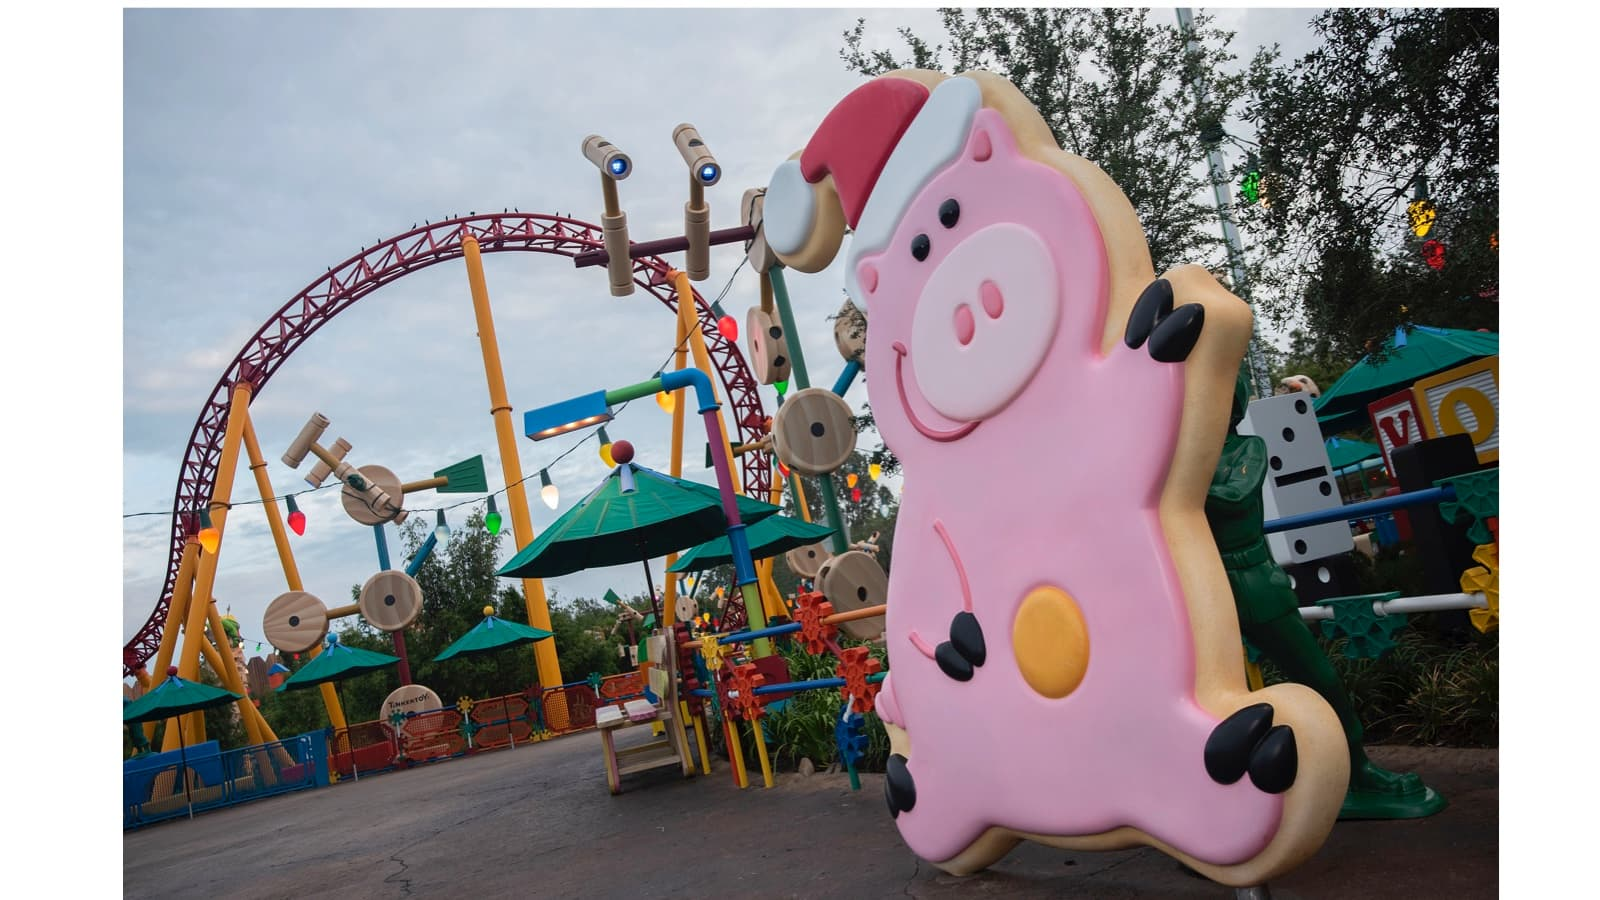 First Look: Toy Story Land Decorated For The Holidays